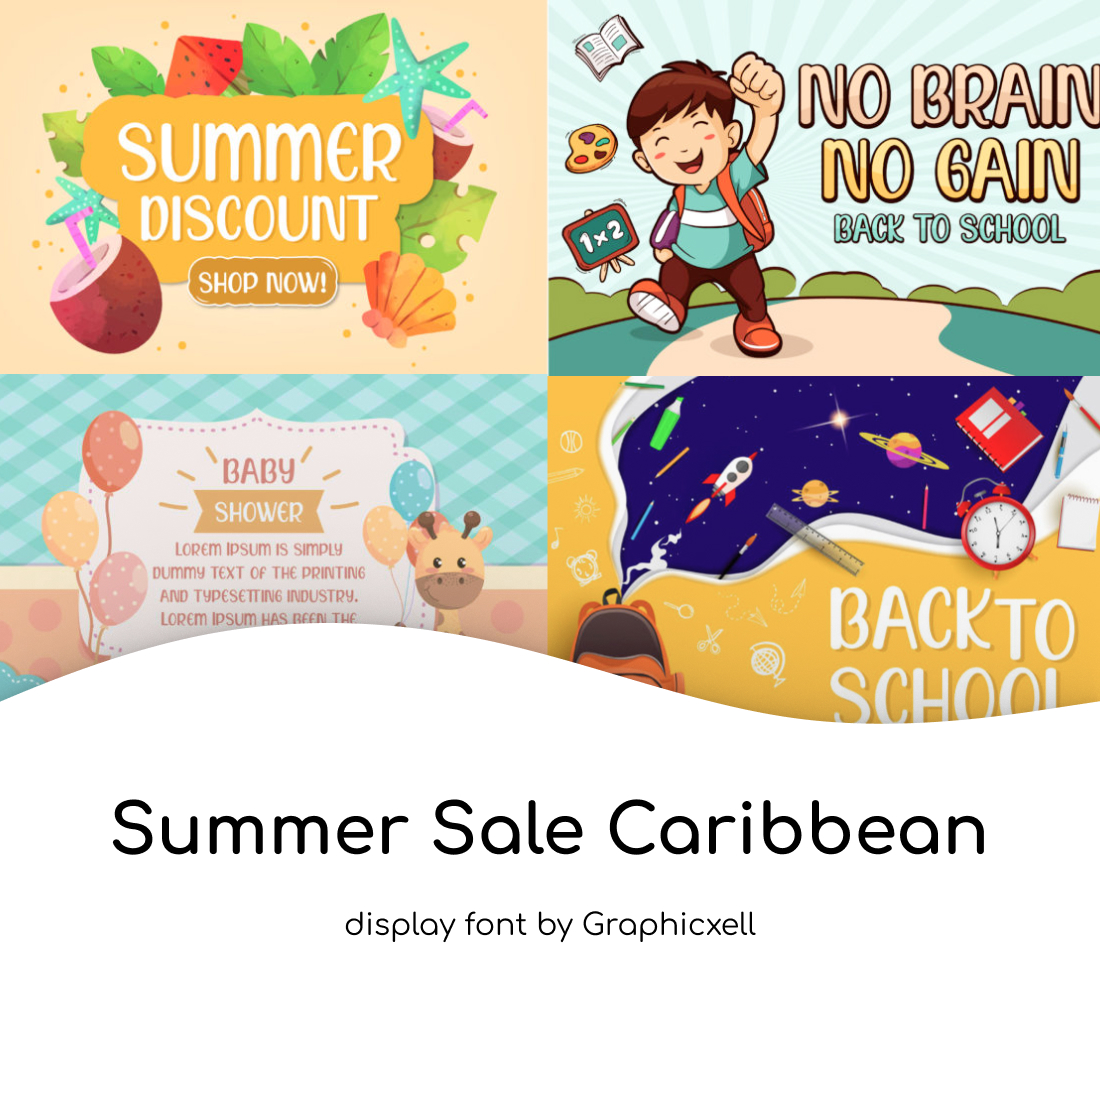 Collage Summer Sale Caribbean Font cover image.